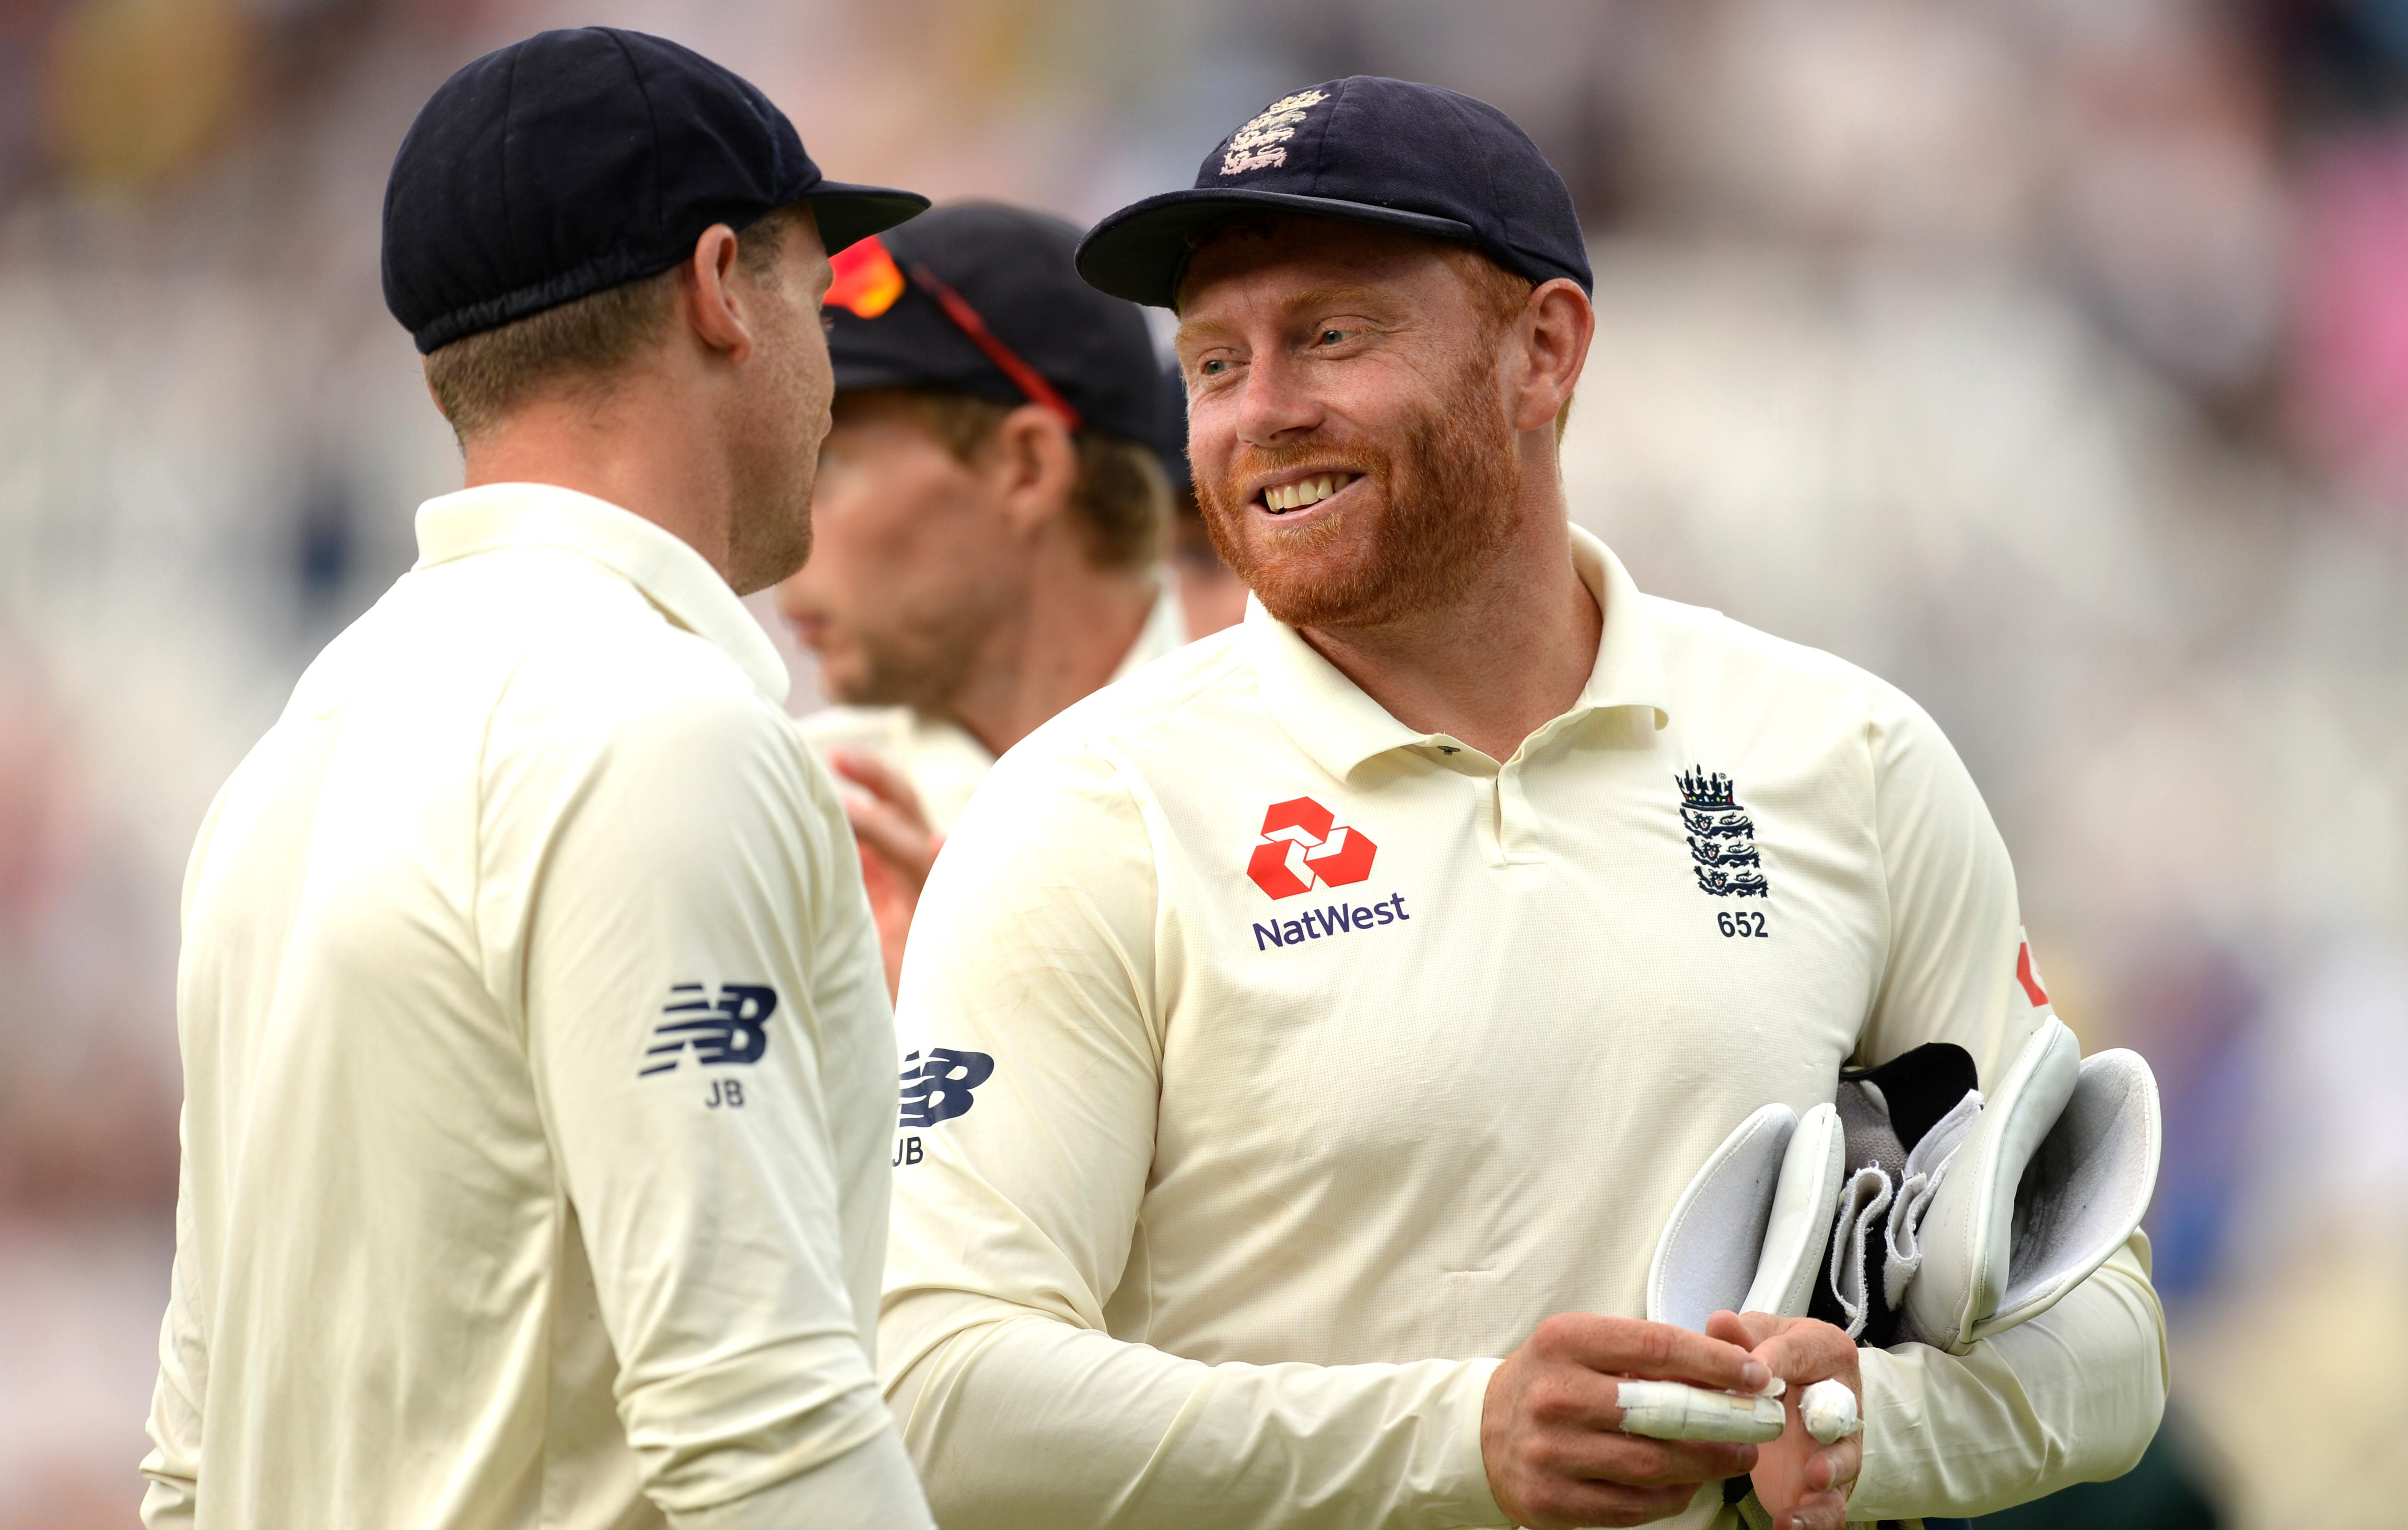 Jonny Bairstow is expected to play in the Fourth Test between England and India at the Ageas Bowl